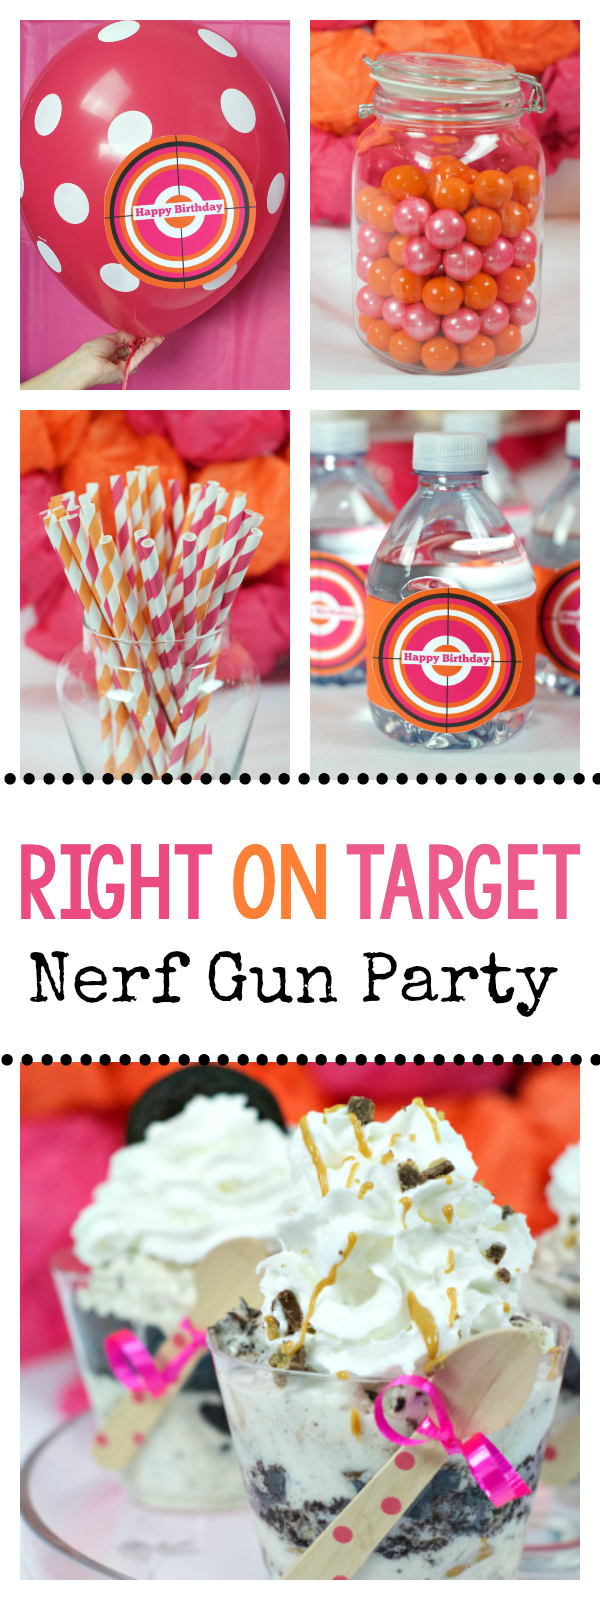 Nerf Gun Party-Great Birthday Party Idea for any age and either gender!